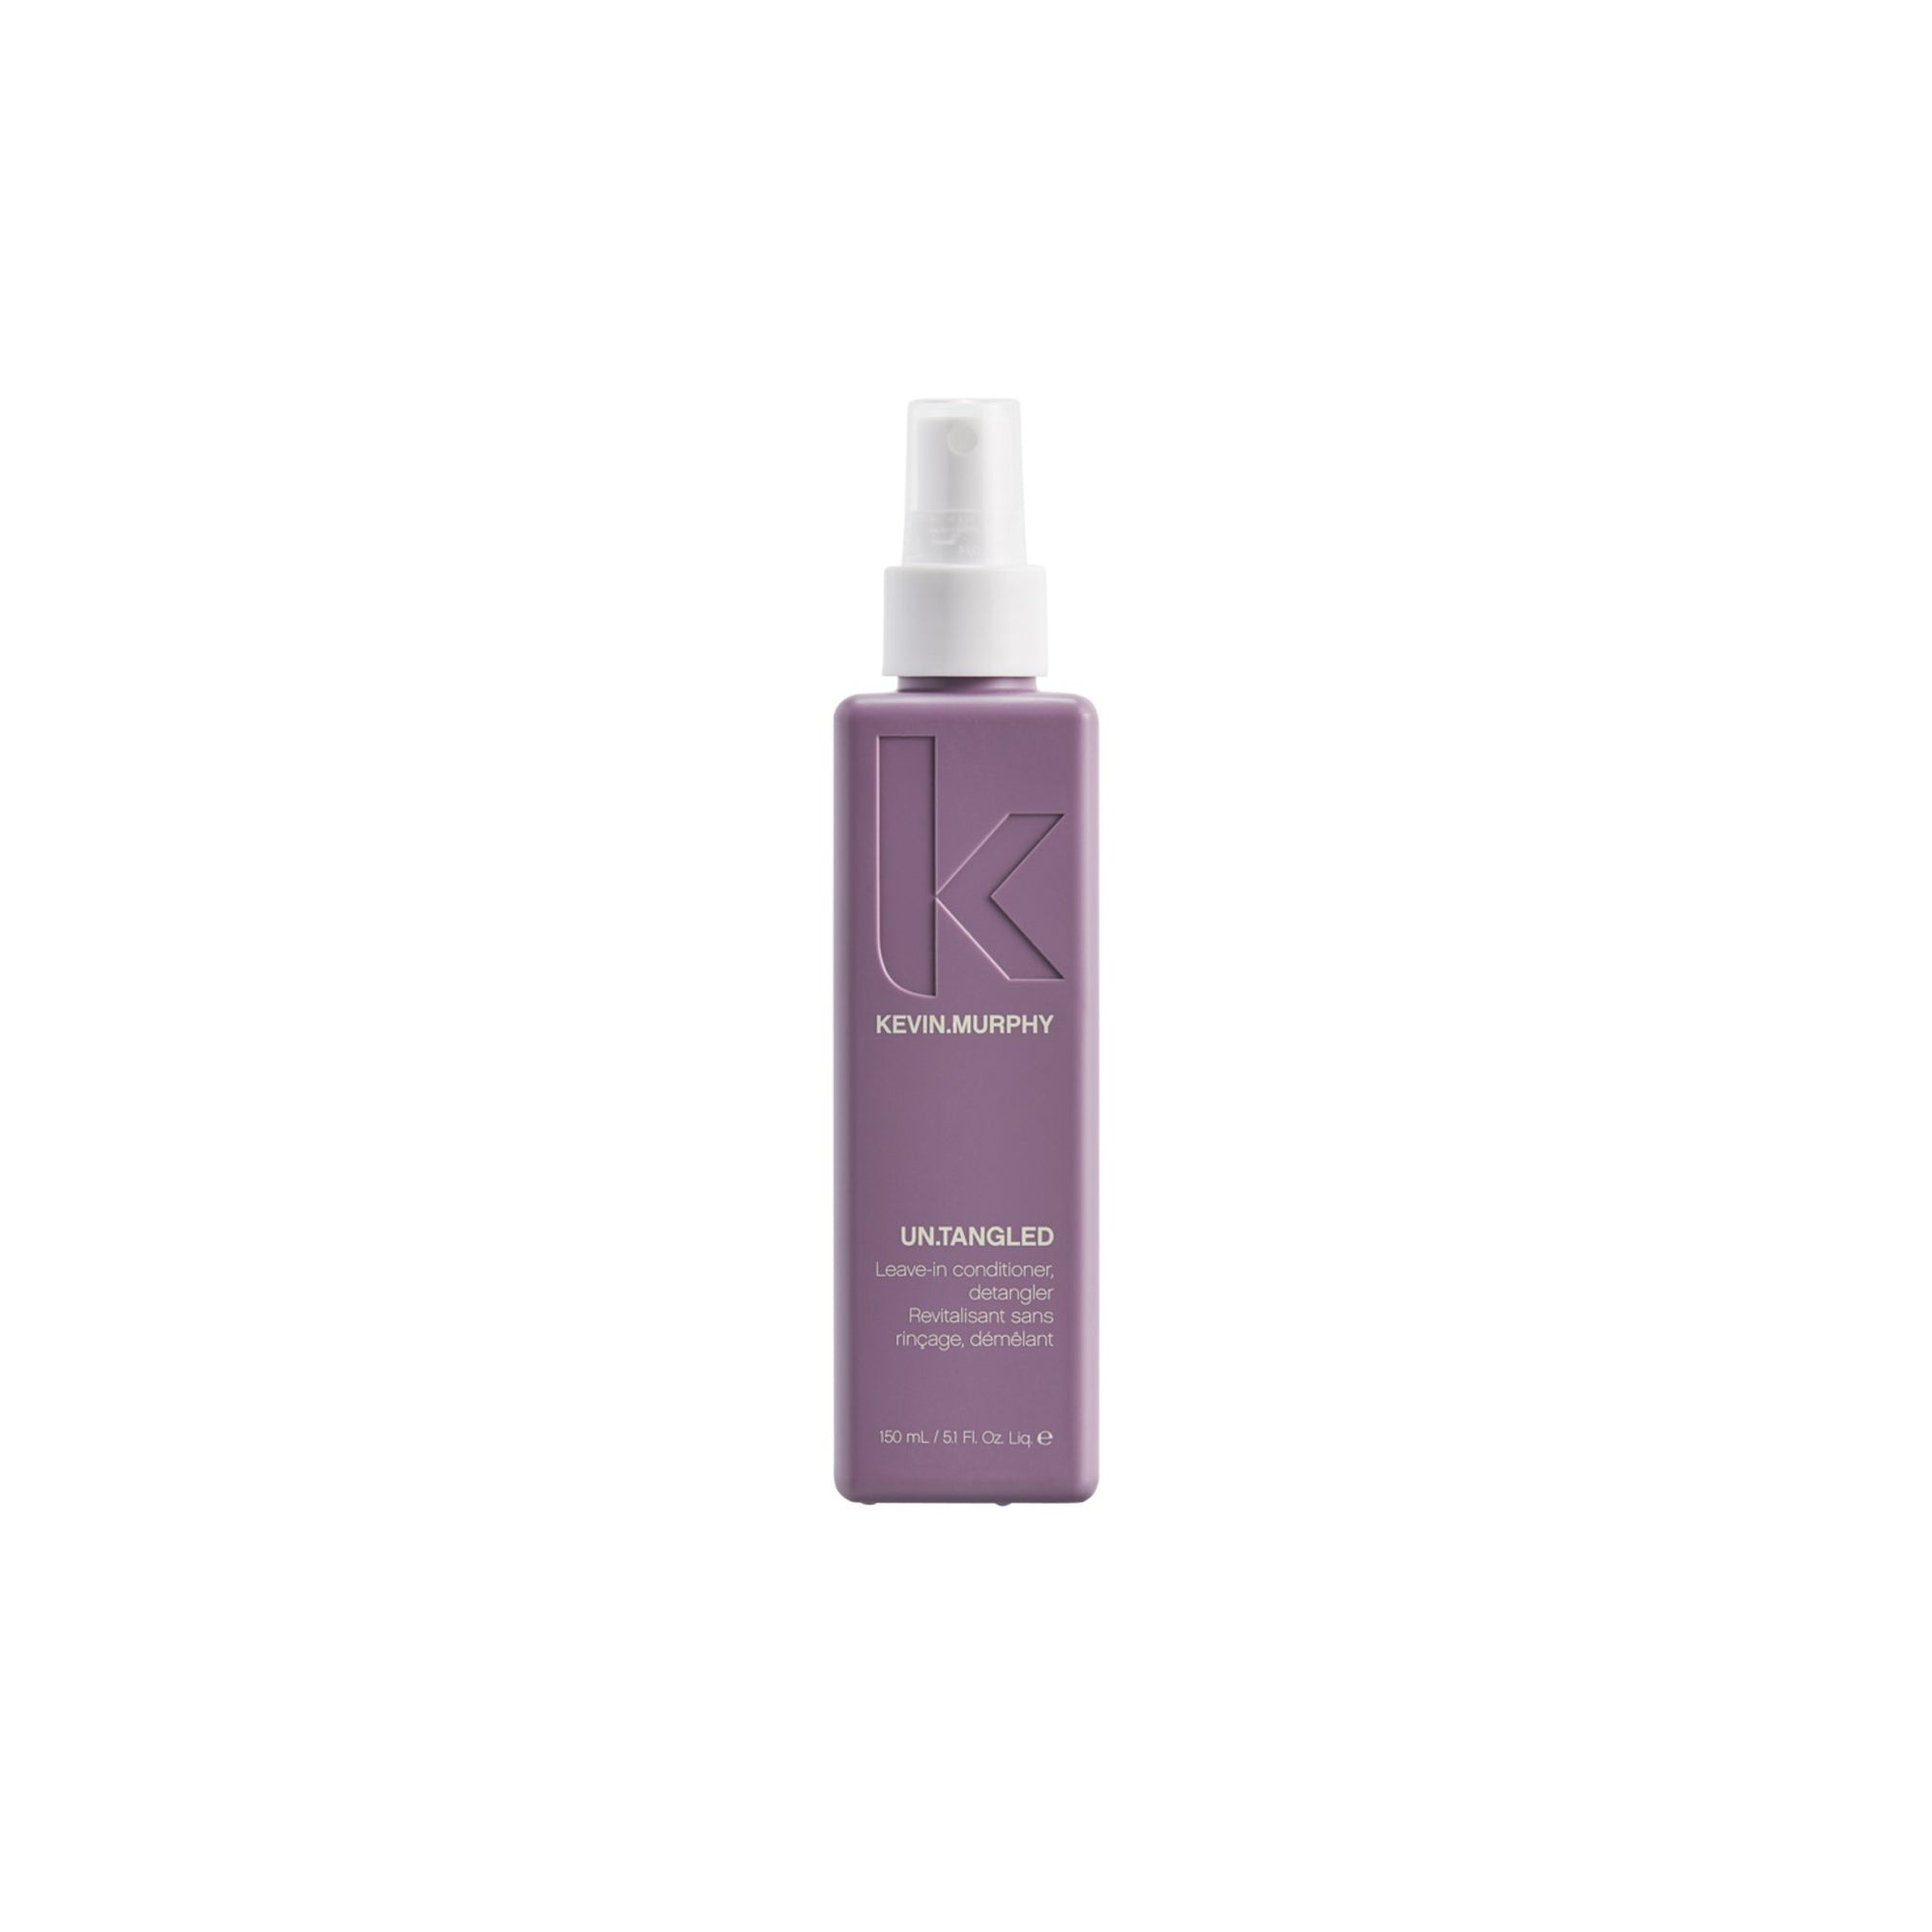 Kevin Murphy UN.TANGLED 150ml